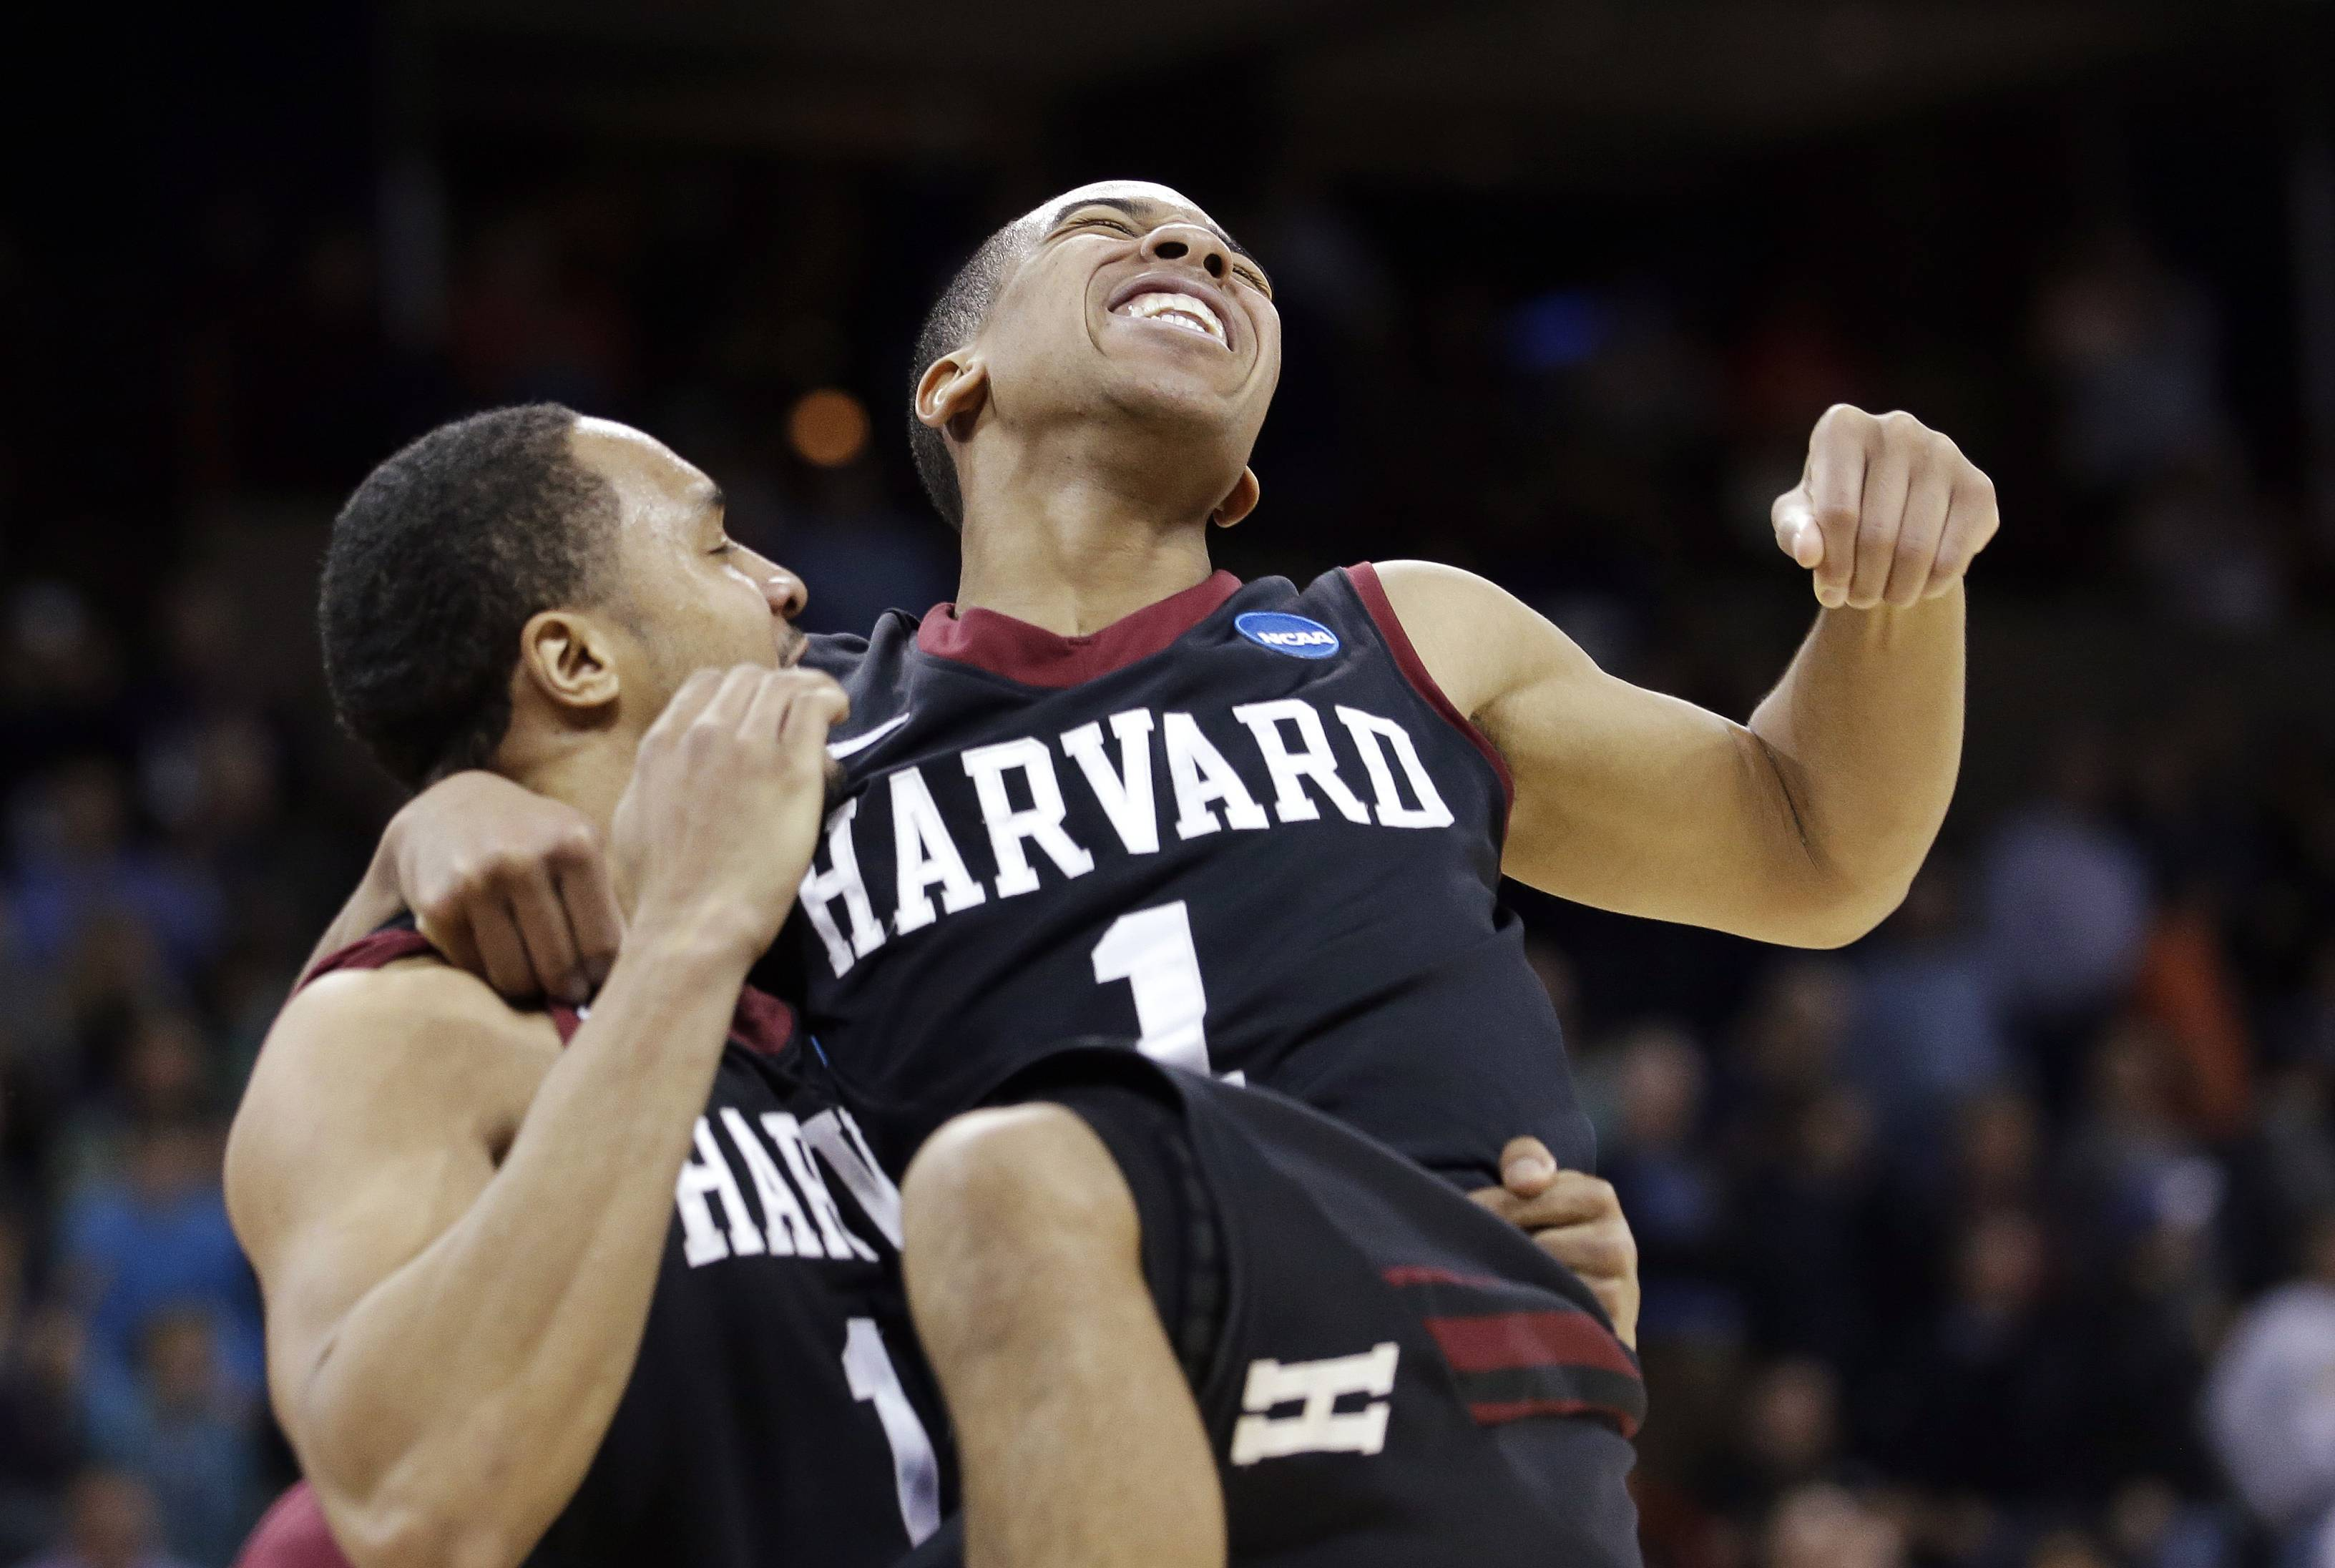 No. 12 Harvard takes down No. 12 Cincinnati